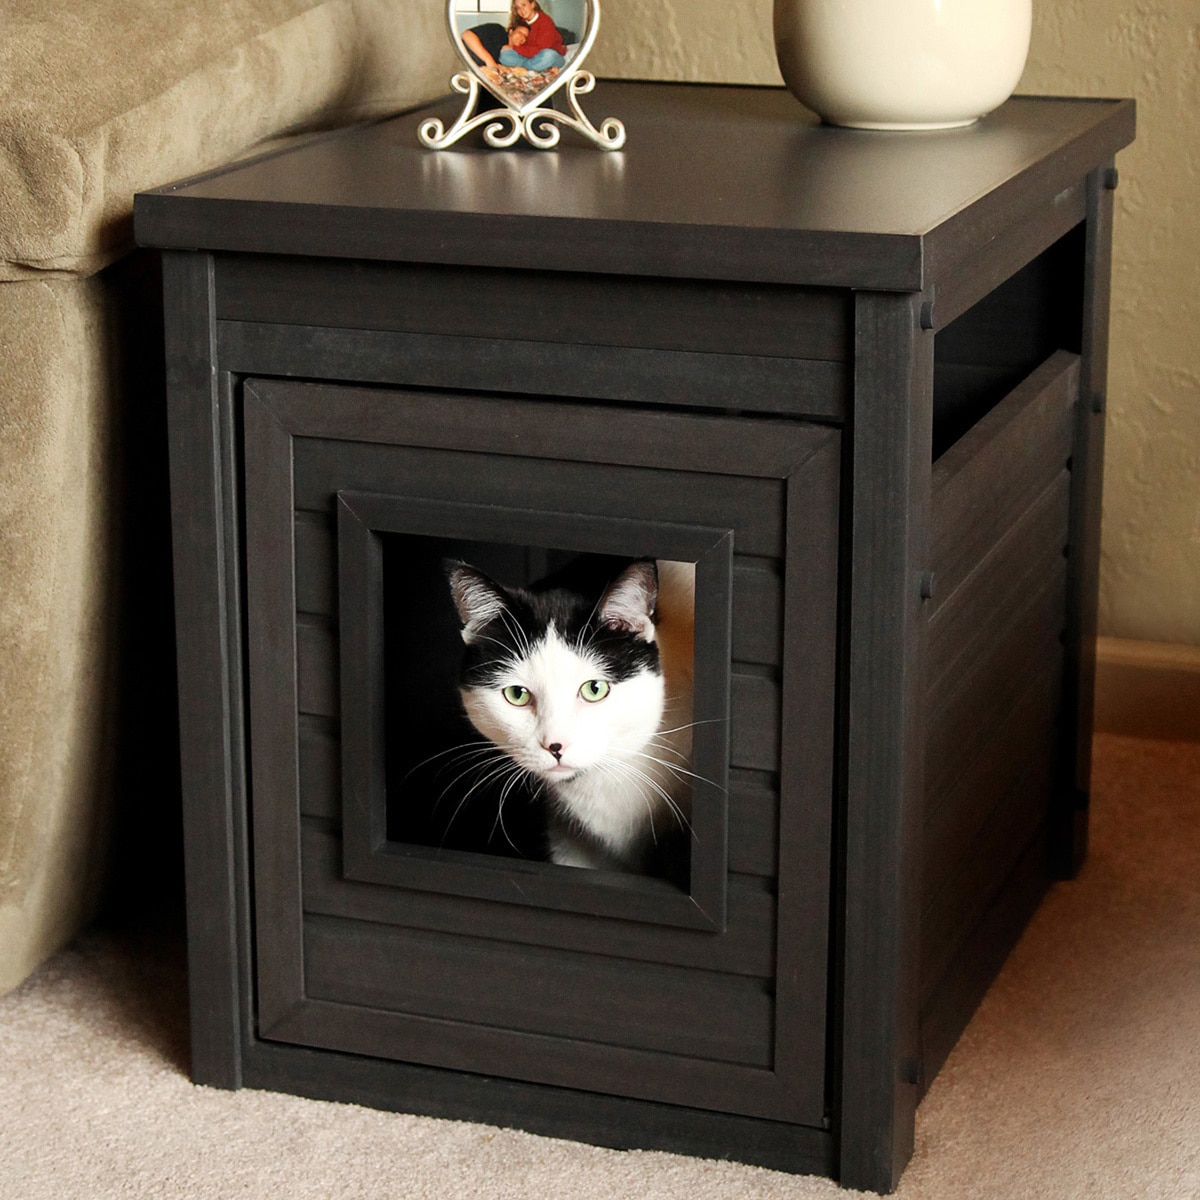 EcoFLEX Litter Loo Hidden Kitty Litter Box Enclosure End Table - Free  Shipping Today - Overstock.com - 14983370